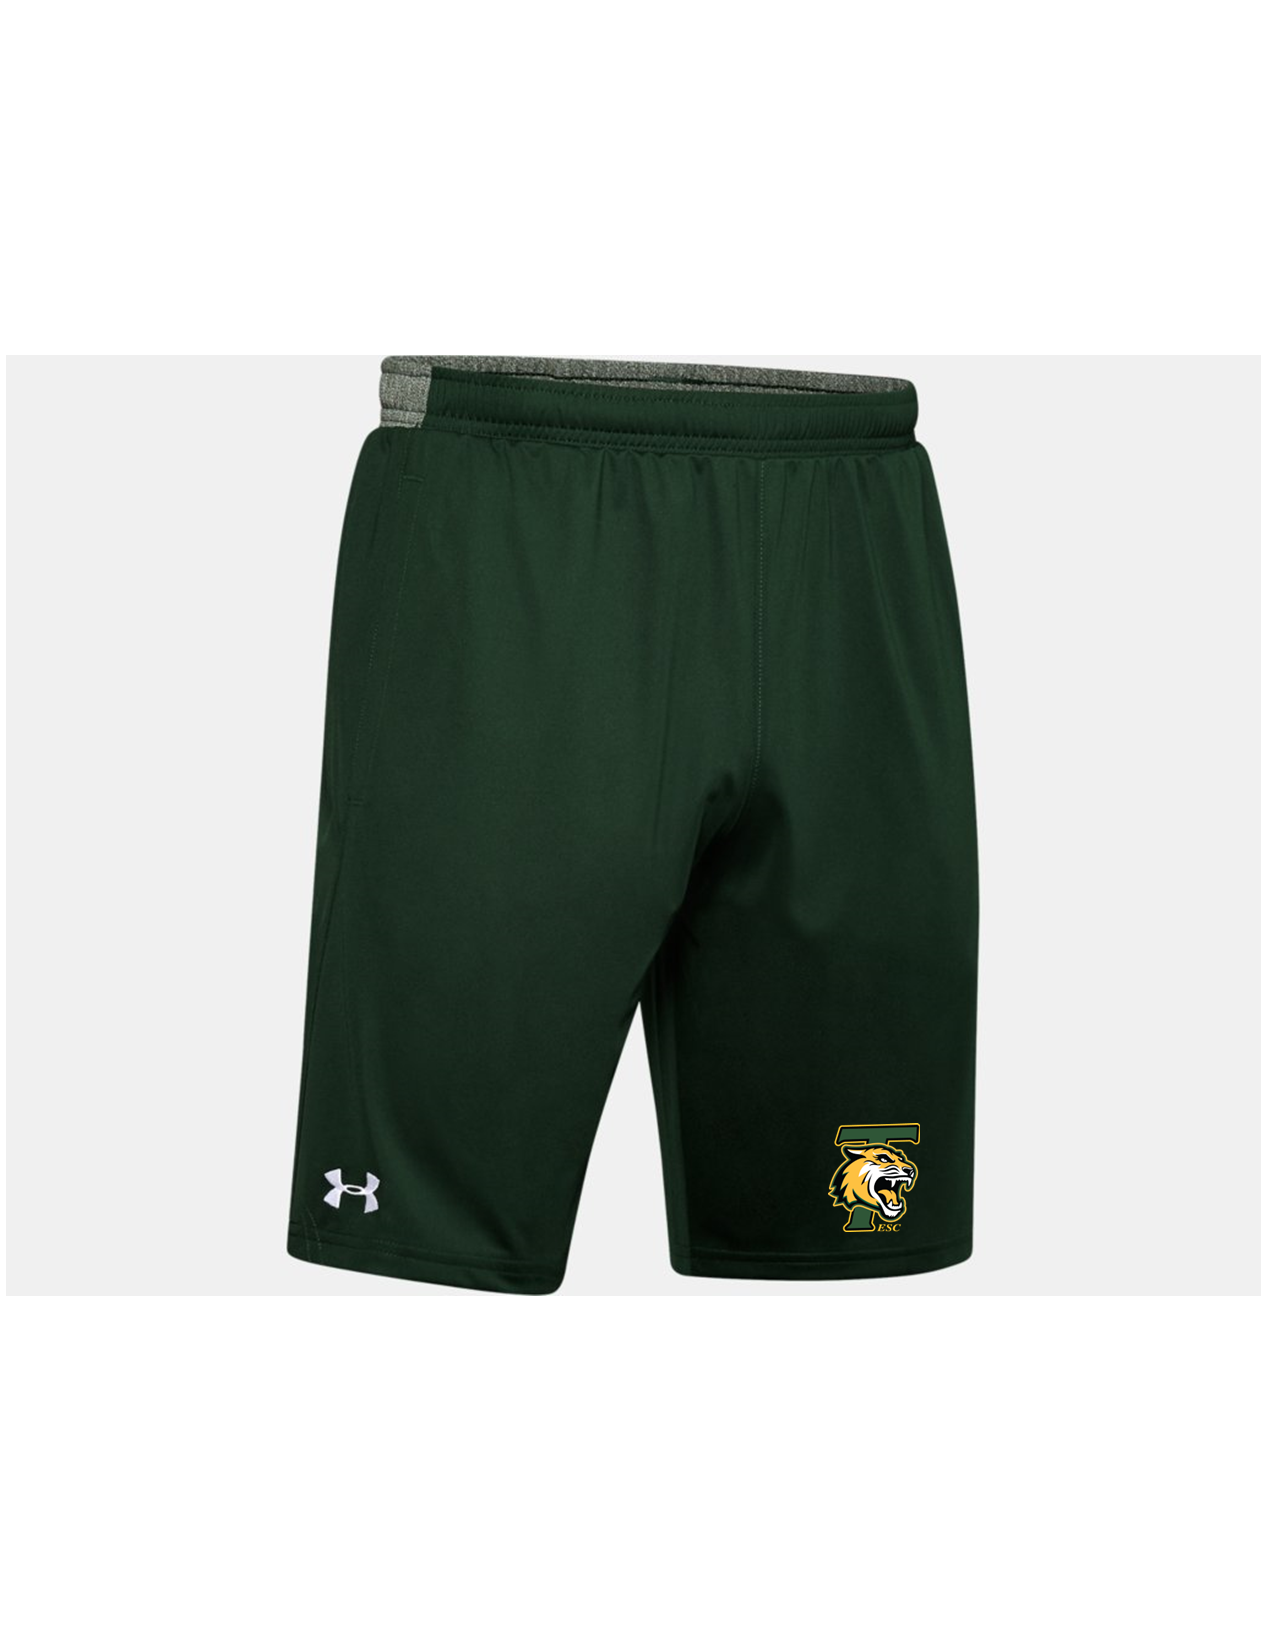 Tigers Player Package Shorts